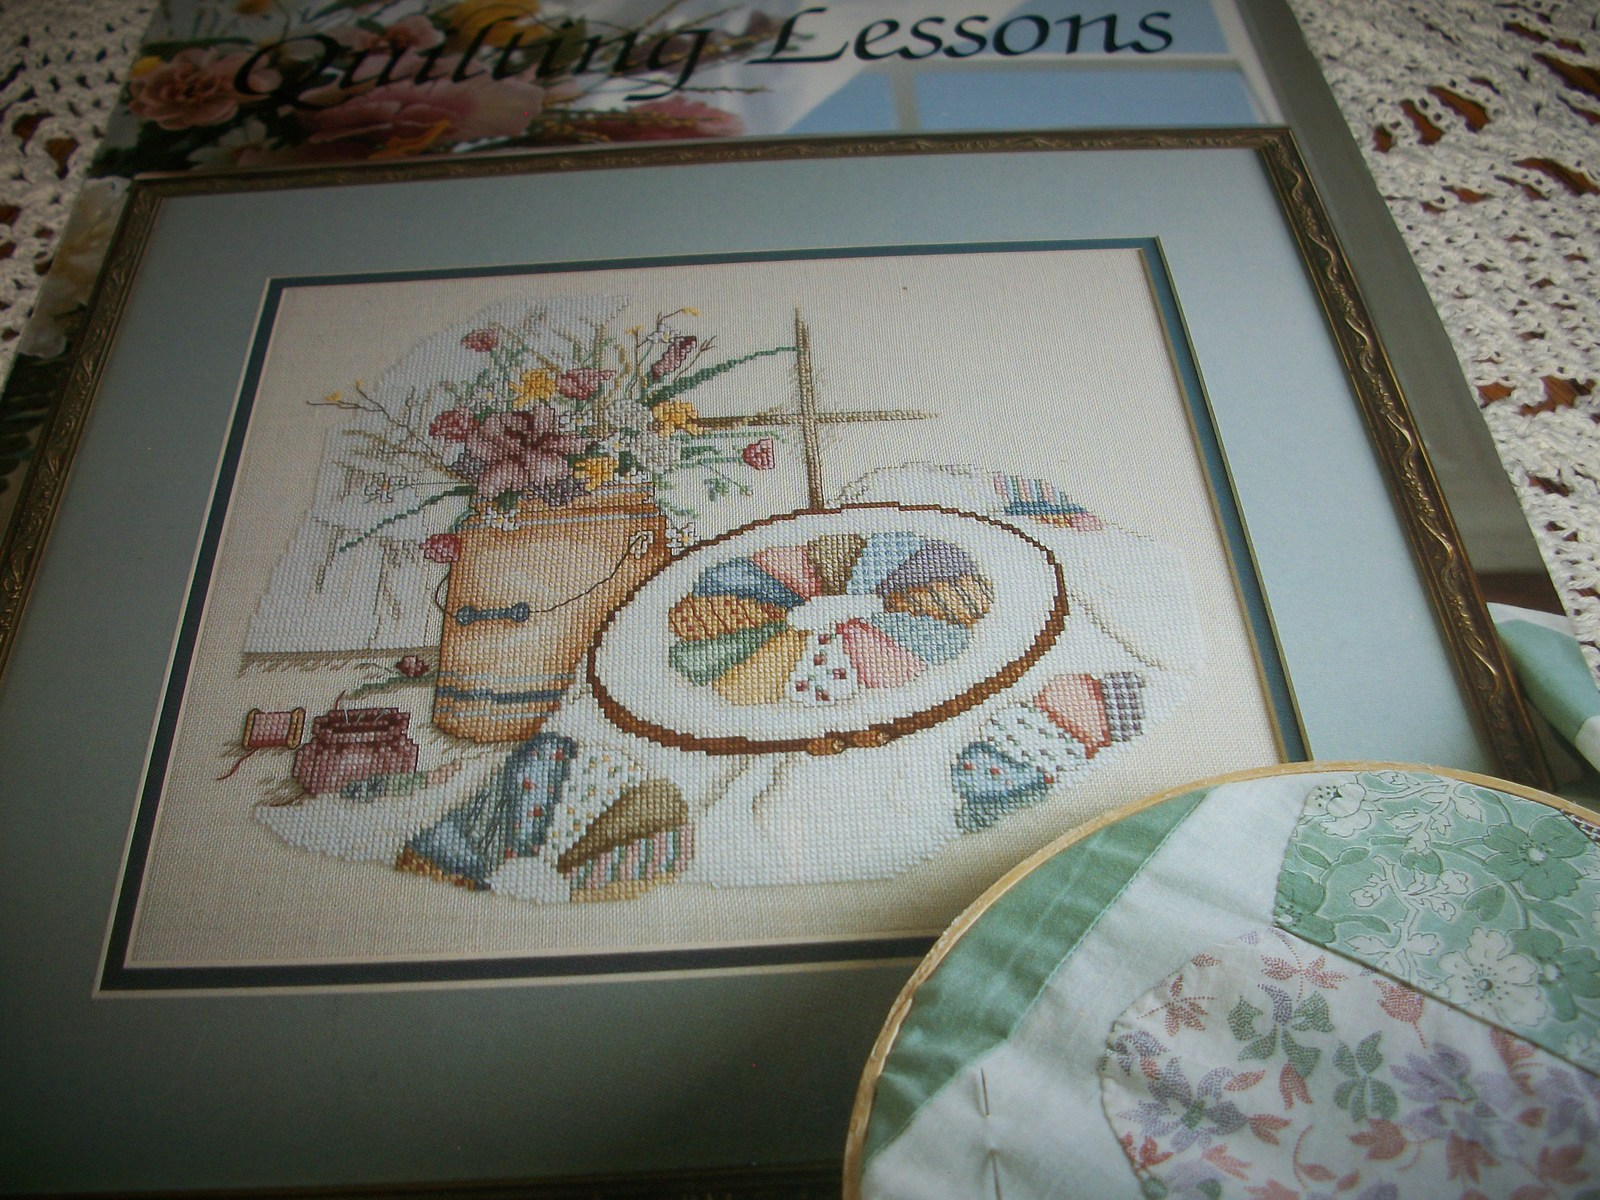 Primary image for Quilting Lessons Cross Stitch Leaflet 605